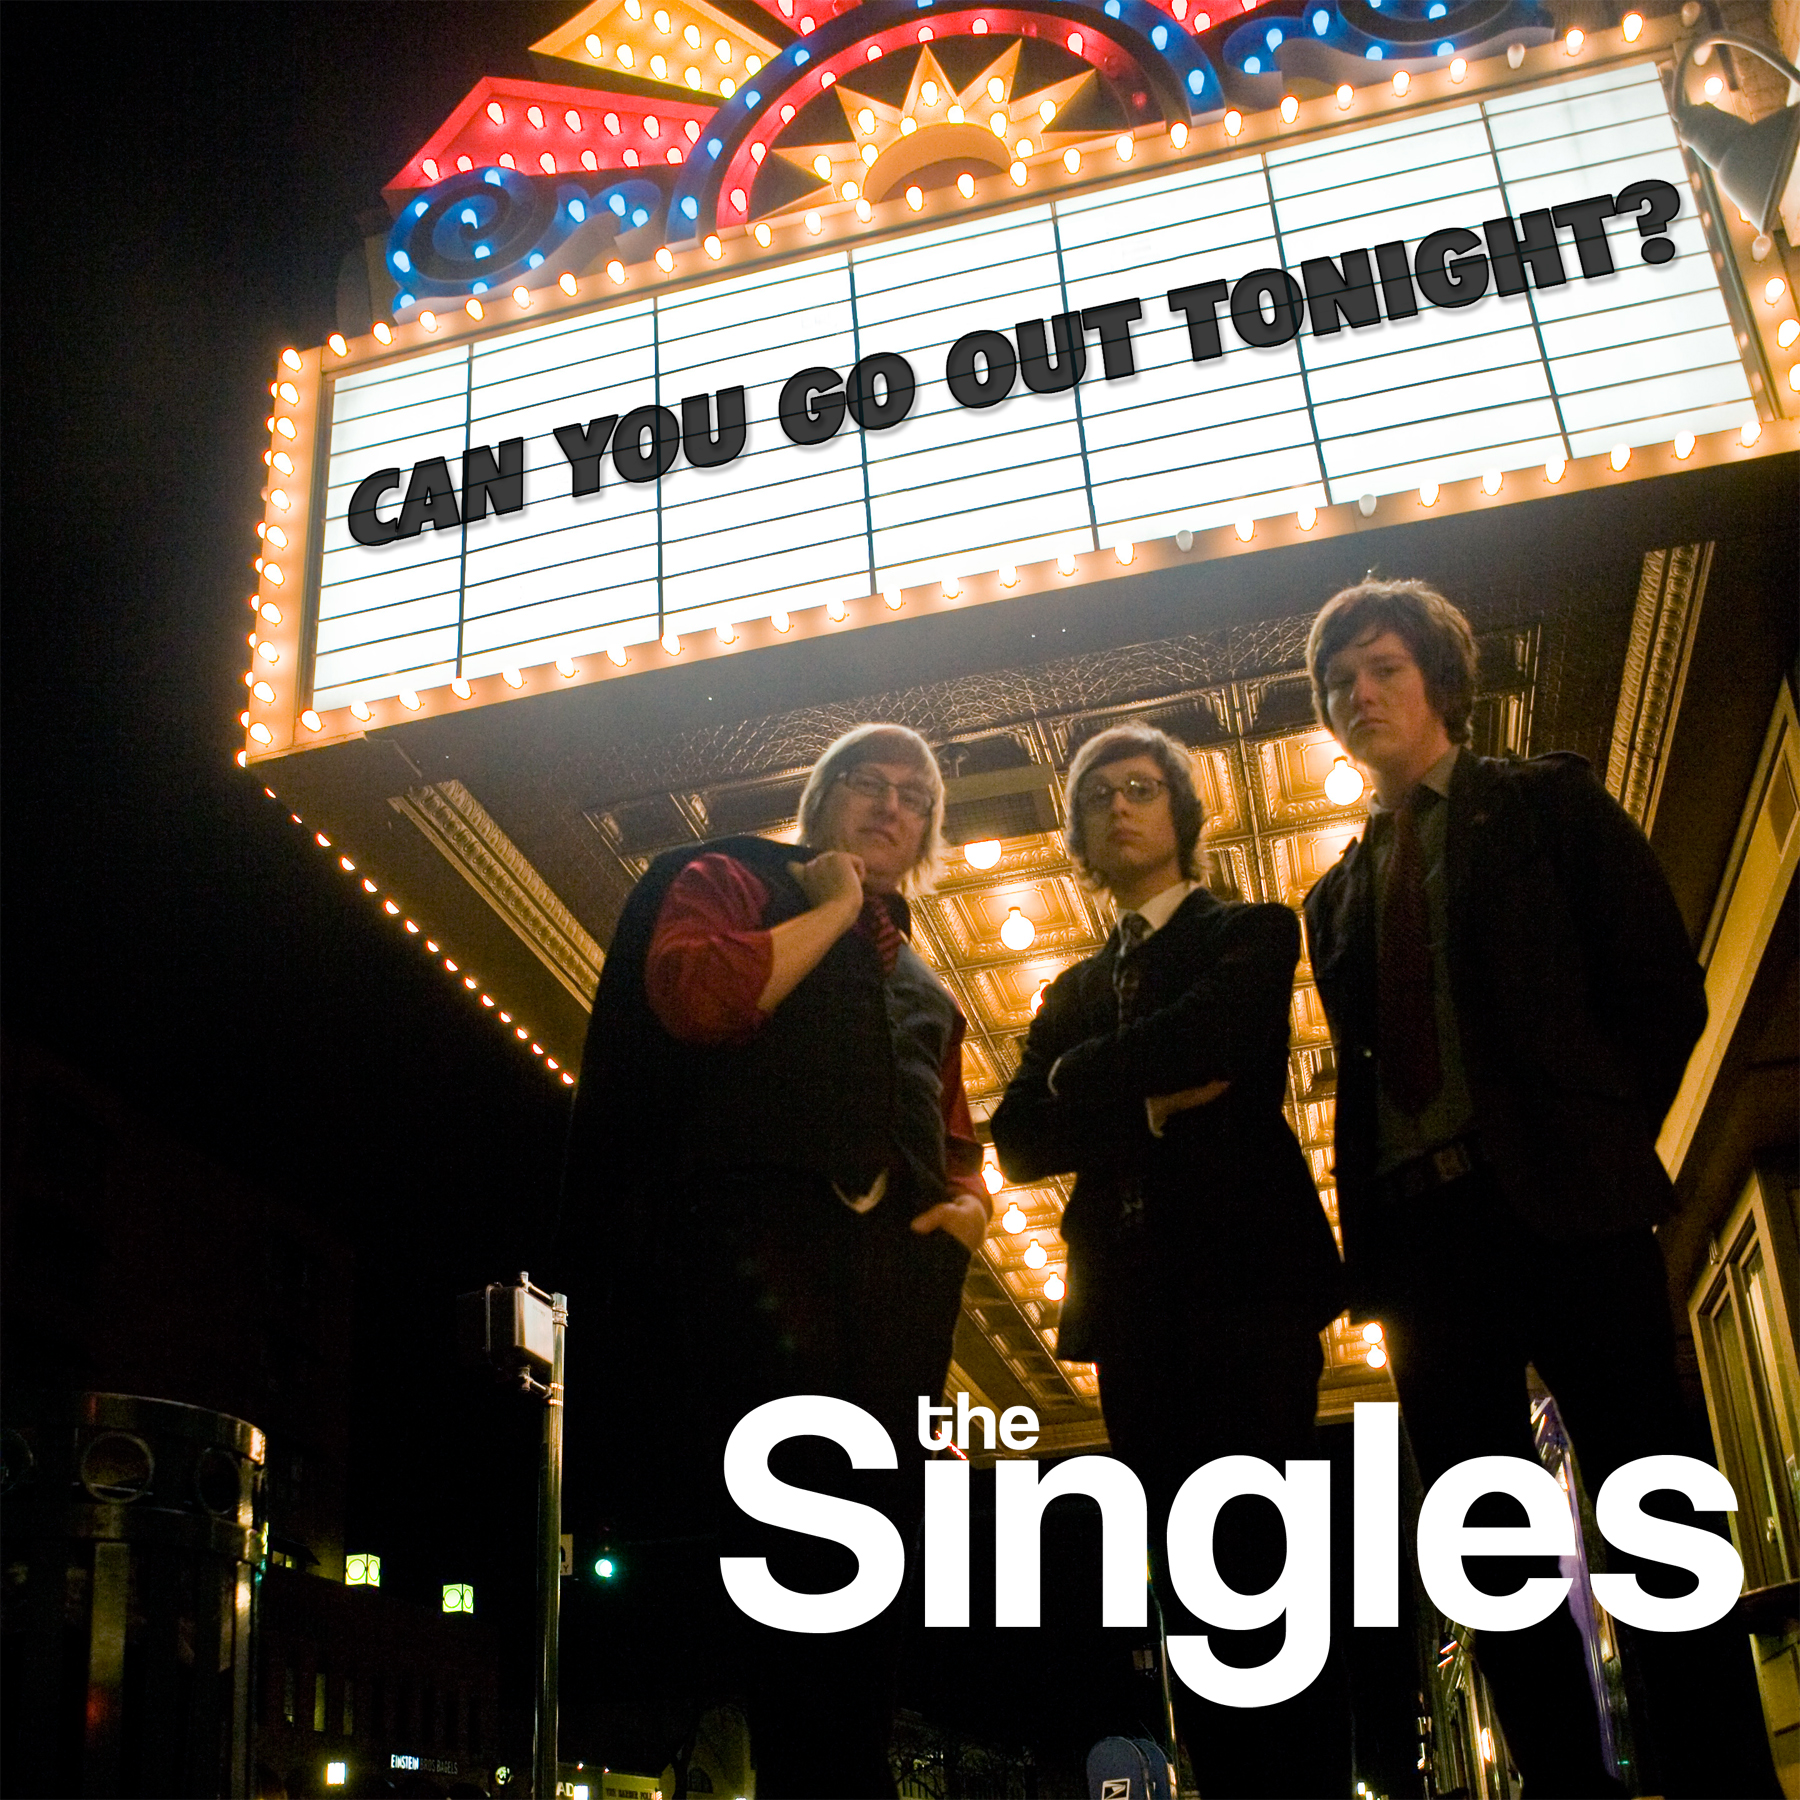 Singles 'Can You Go Out Tonight'CD Art